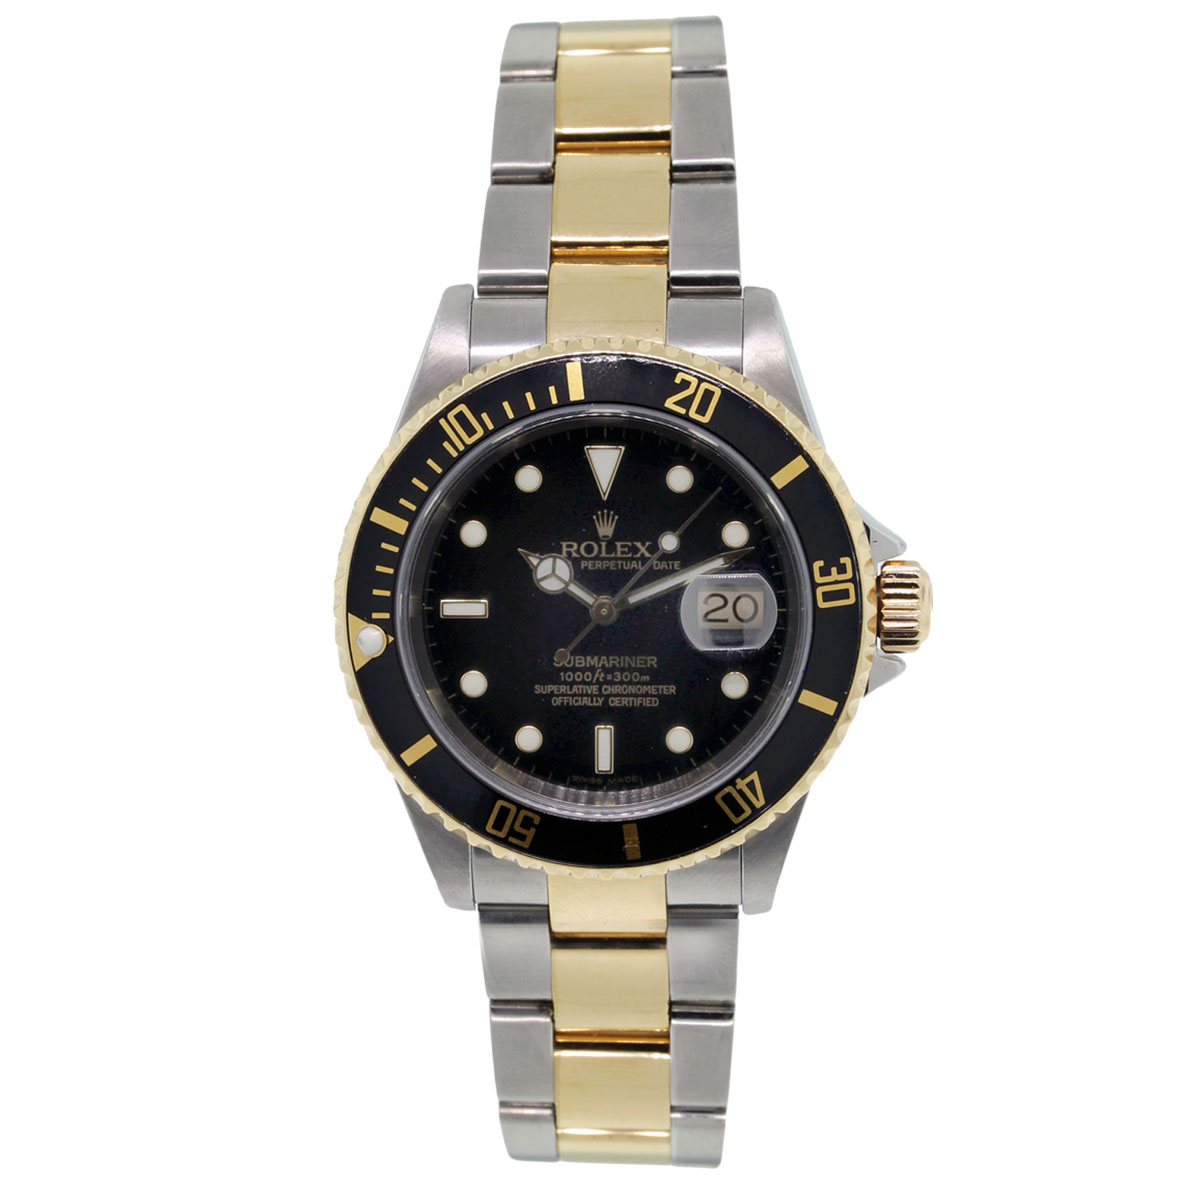 rolex submariner 116613 black dial two tone watch. Black Bedroom Furniture Sets. Home Design Ideas